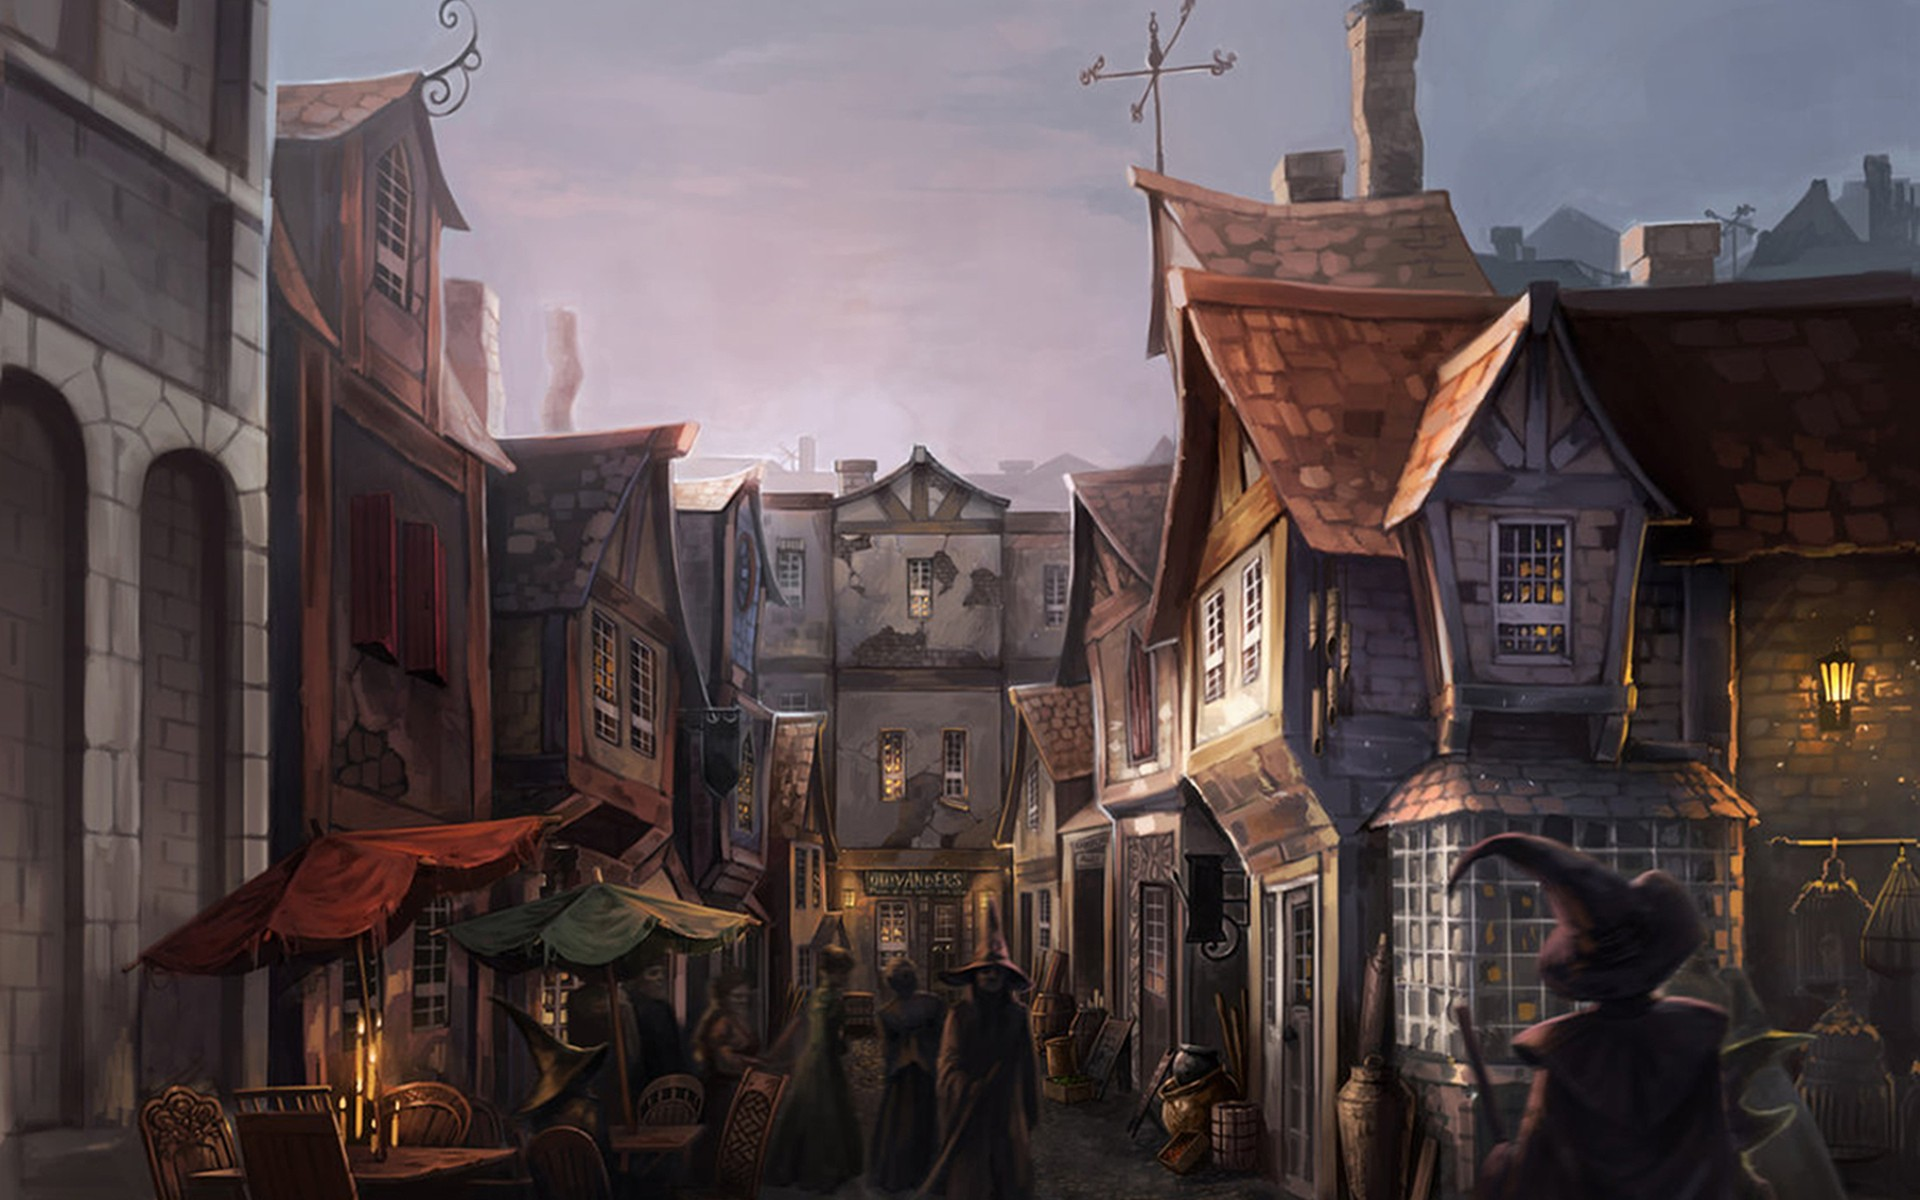 875323-artwork-diagon-alley-digital-art-fantasy-art-fictional-landscapes-harry-potter-market-witches.jpg